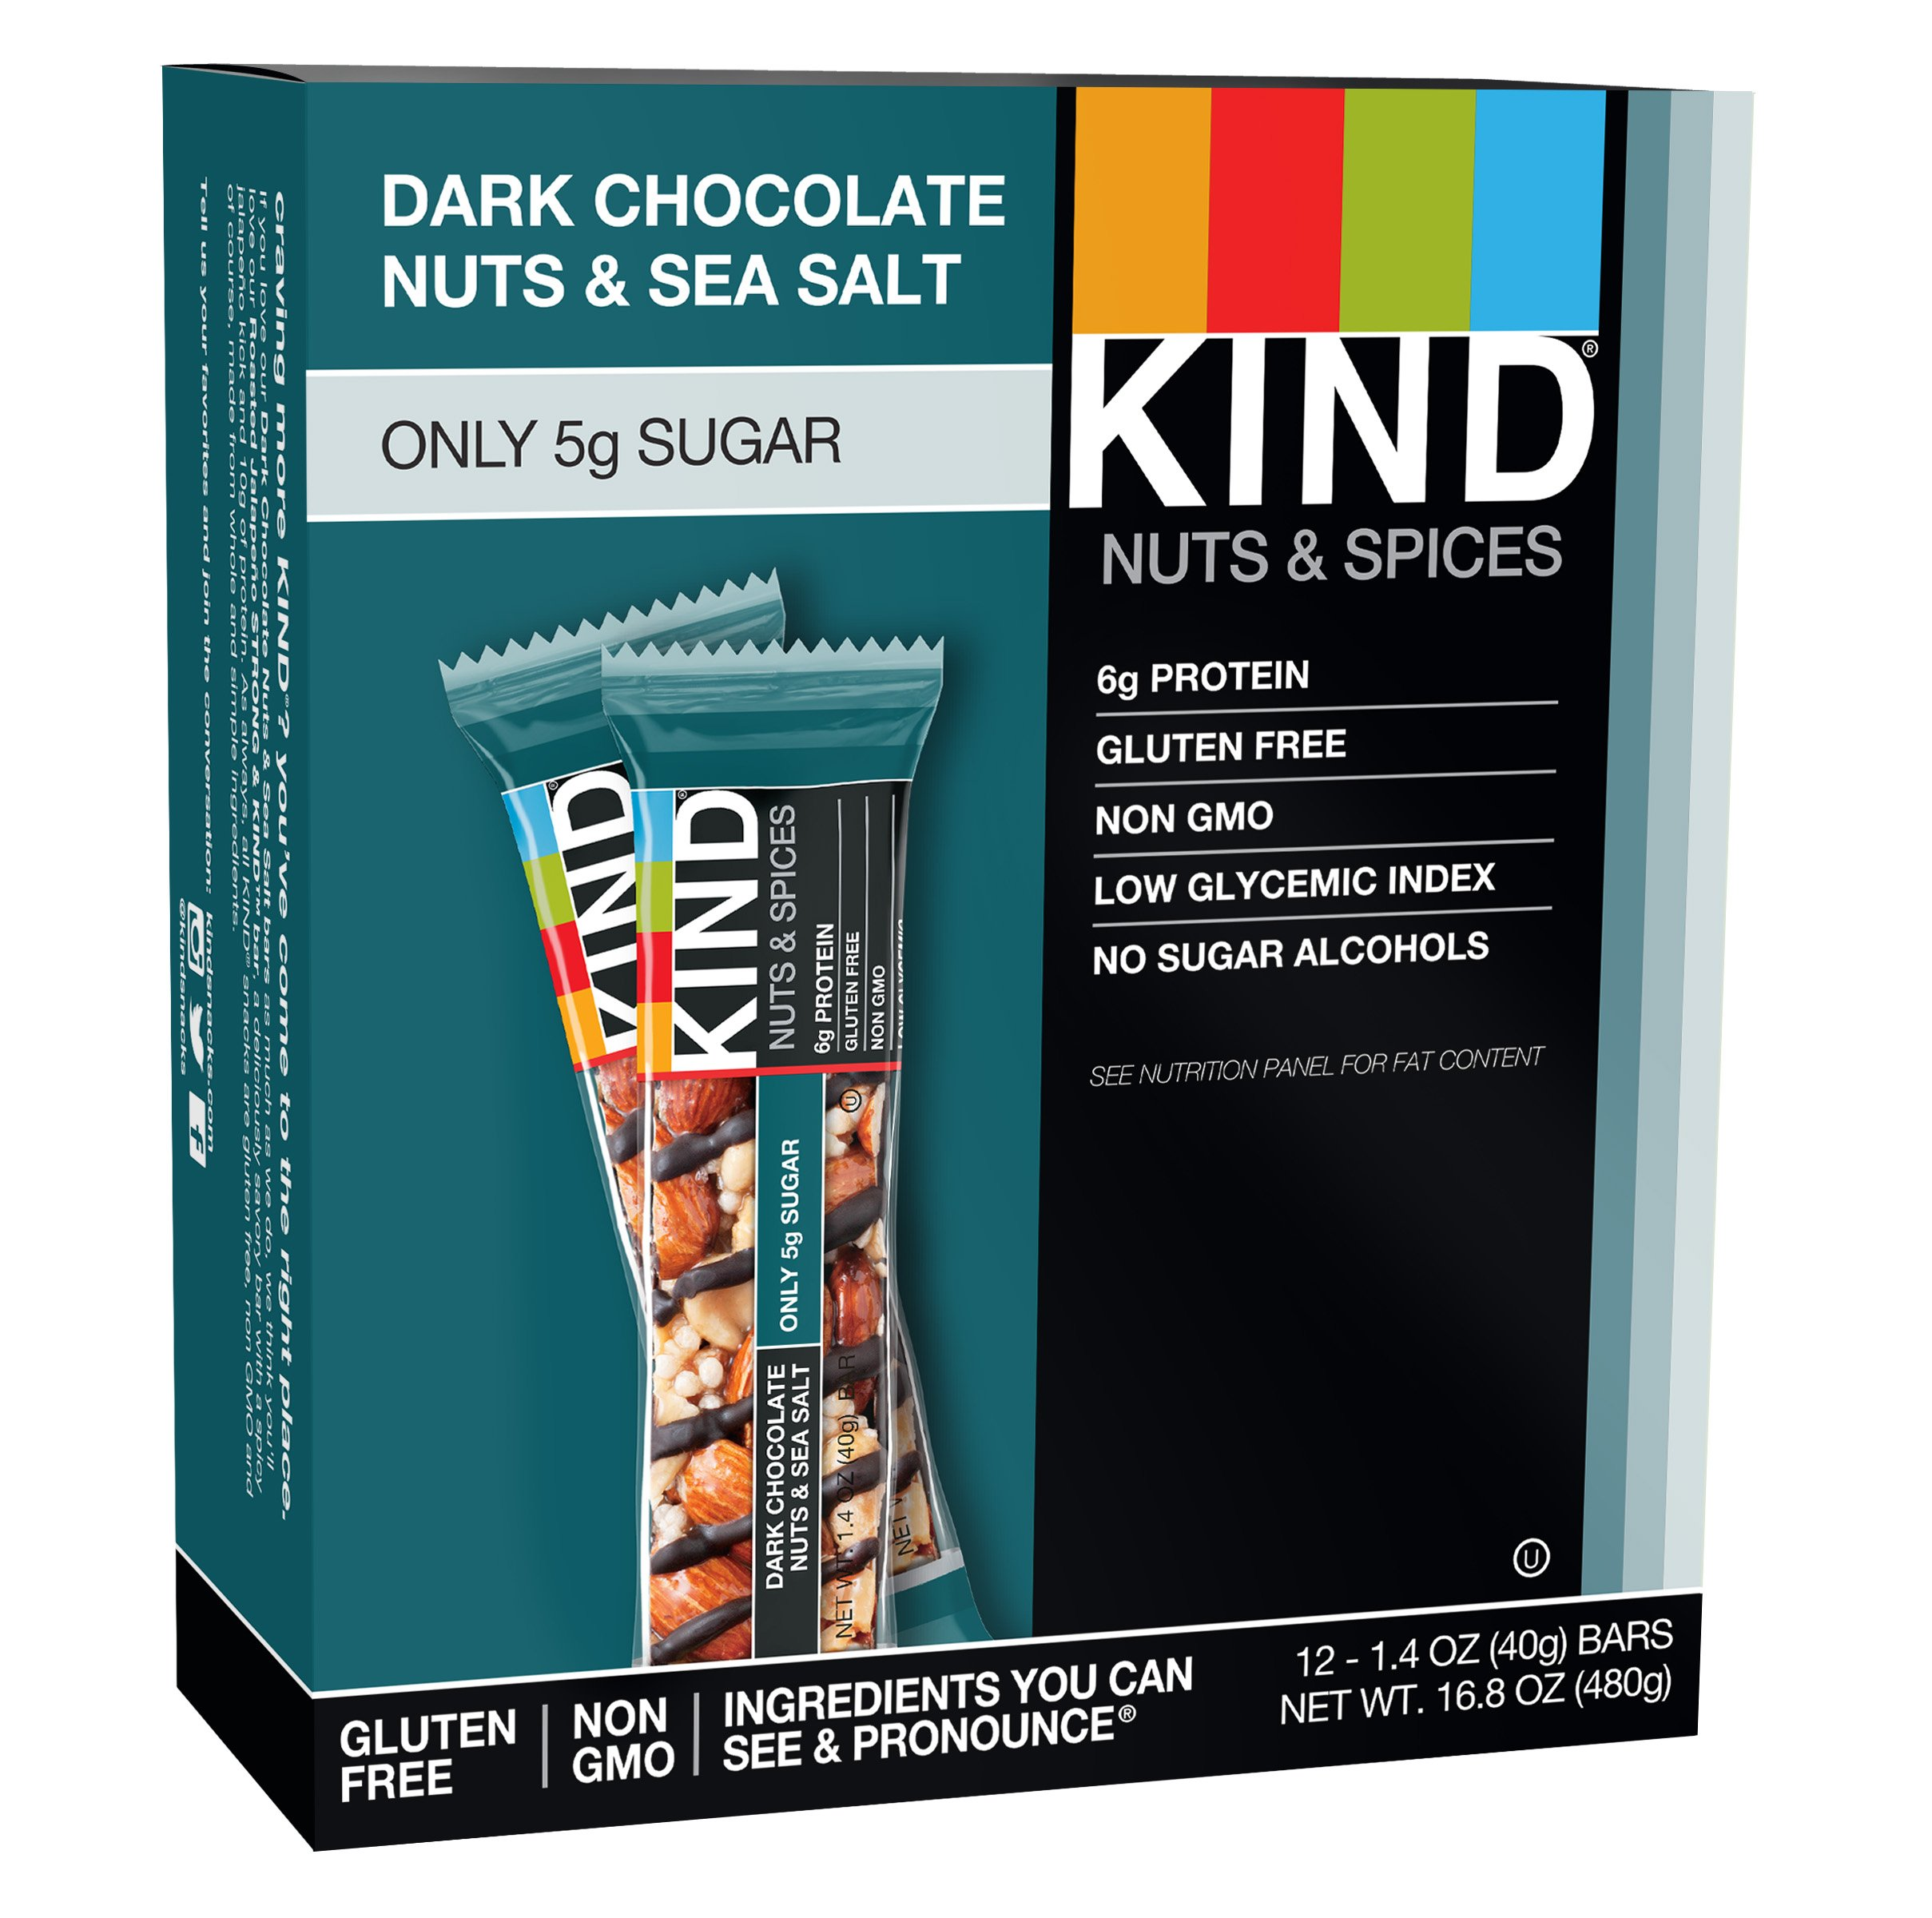 KIND Bars, Dark Chocolate Nuts & Sea Salt 12ct, Gluten Free, 6g Protein, 5g Sugar